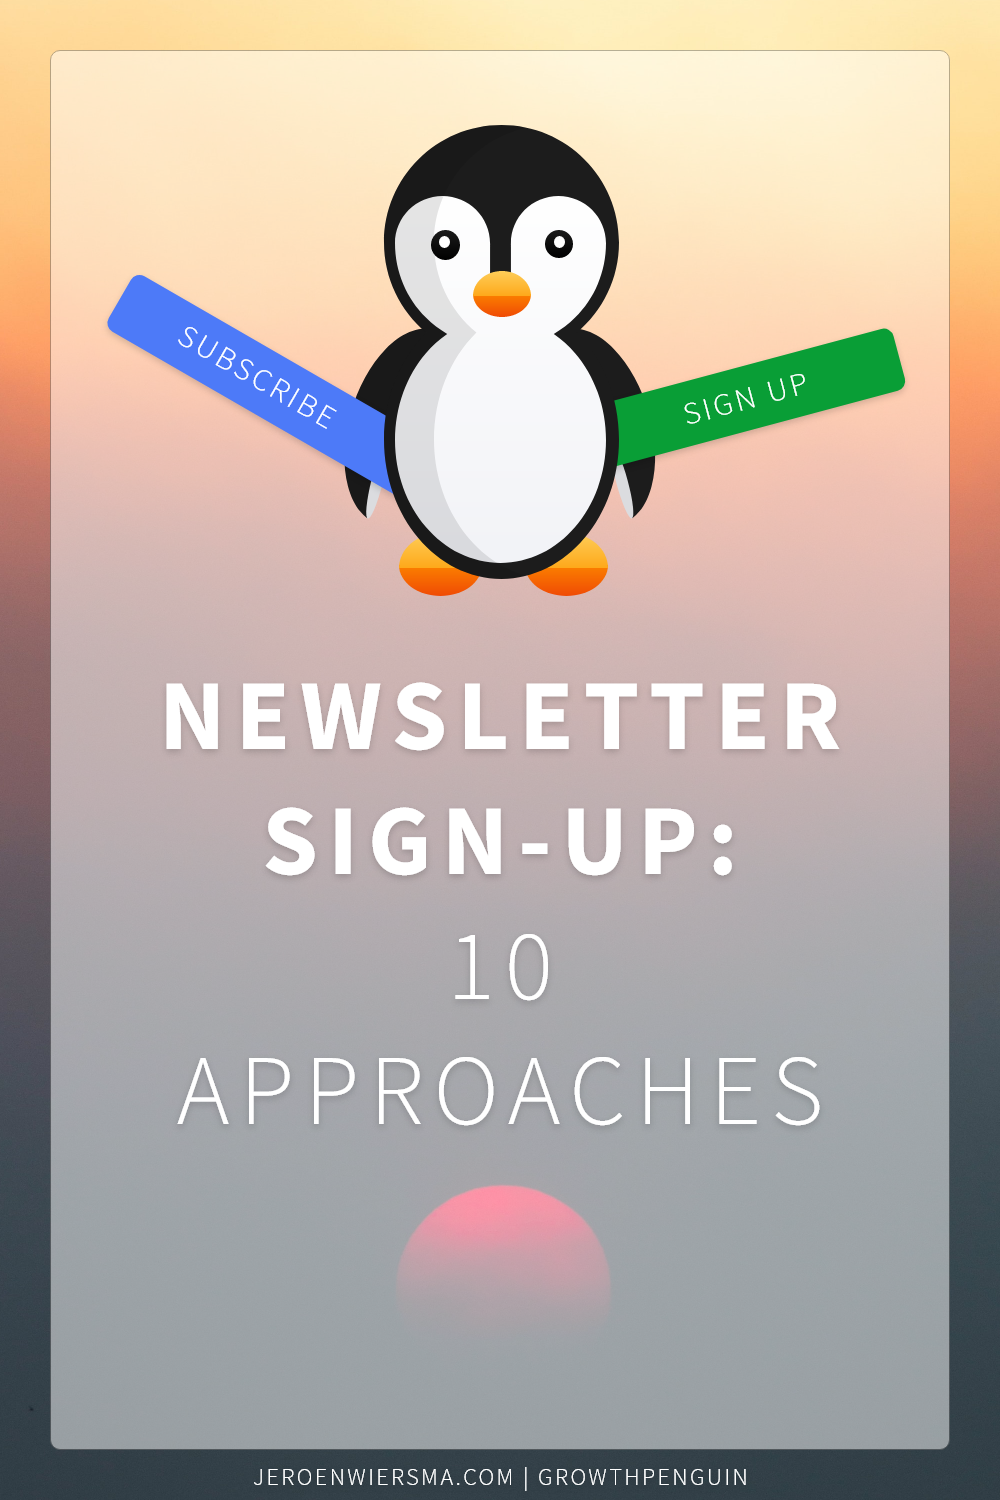 Newsletter sign-up: 10 approaches